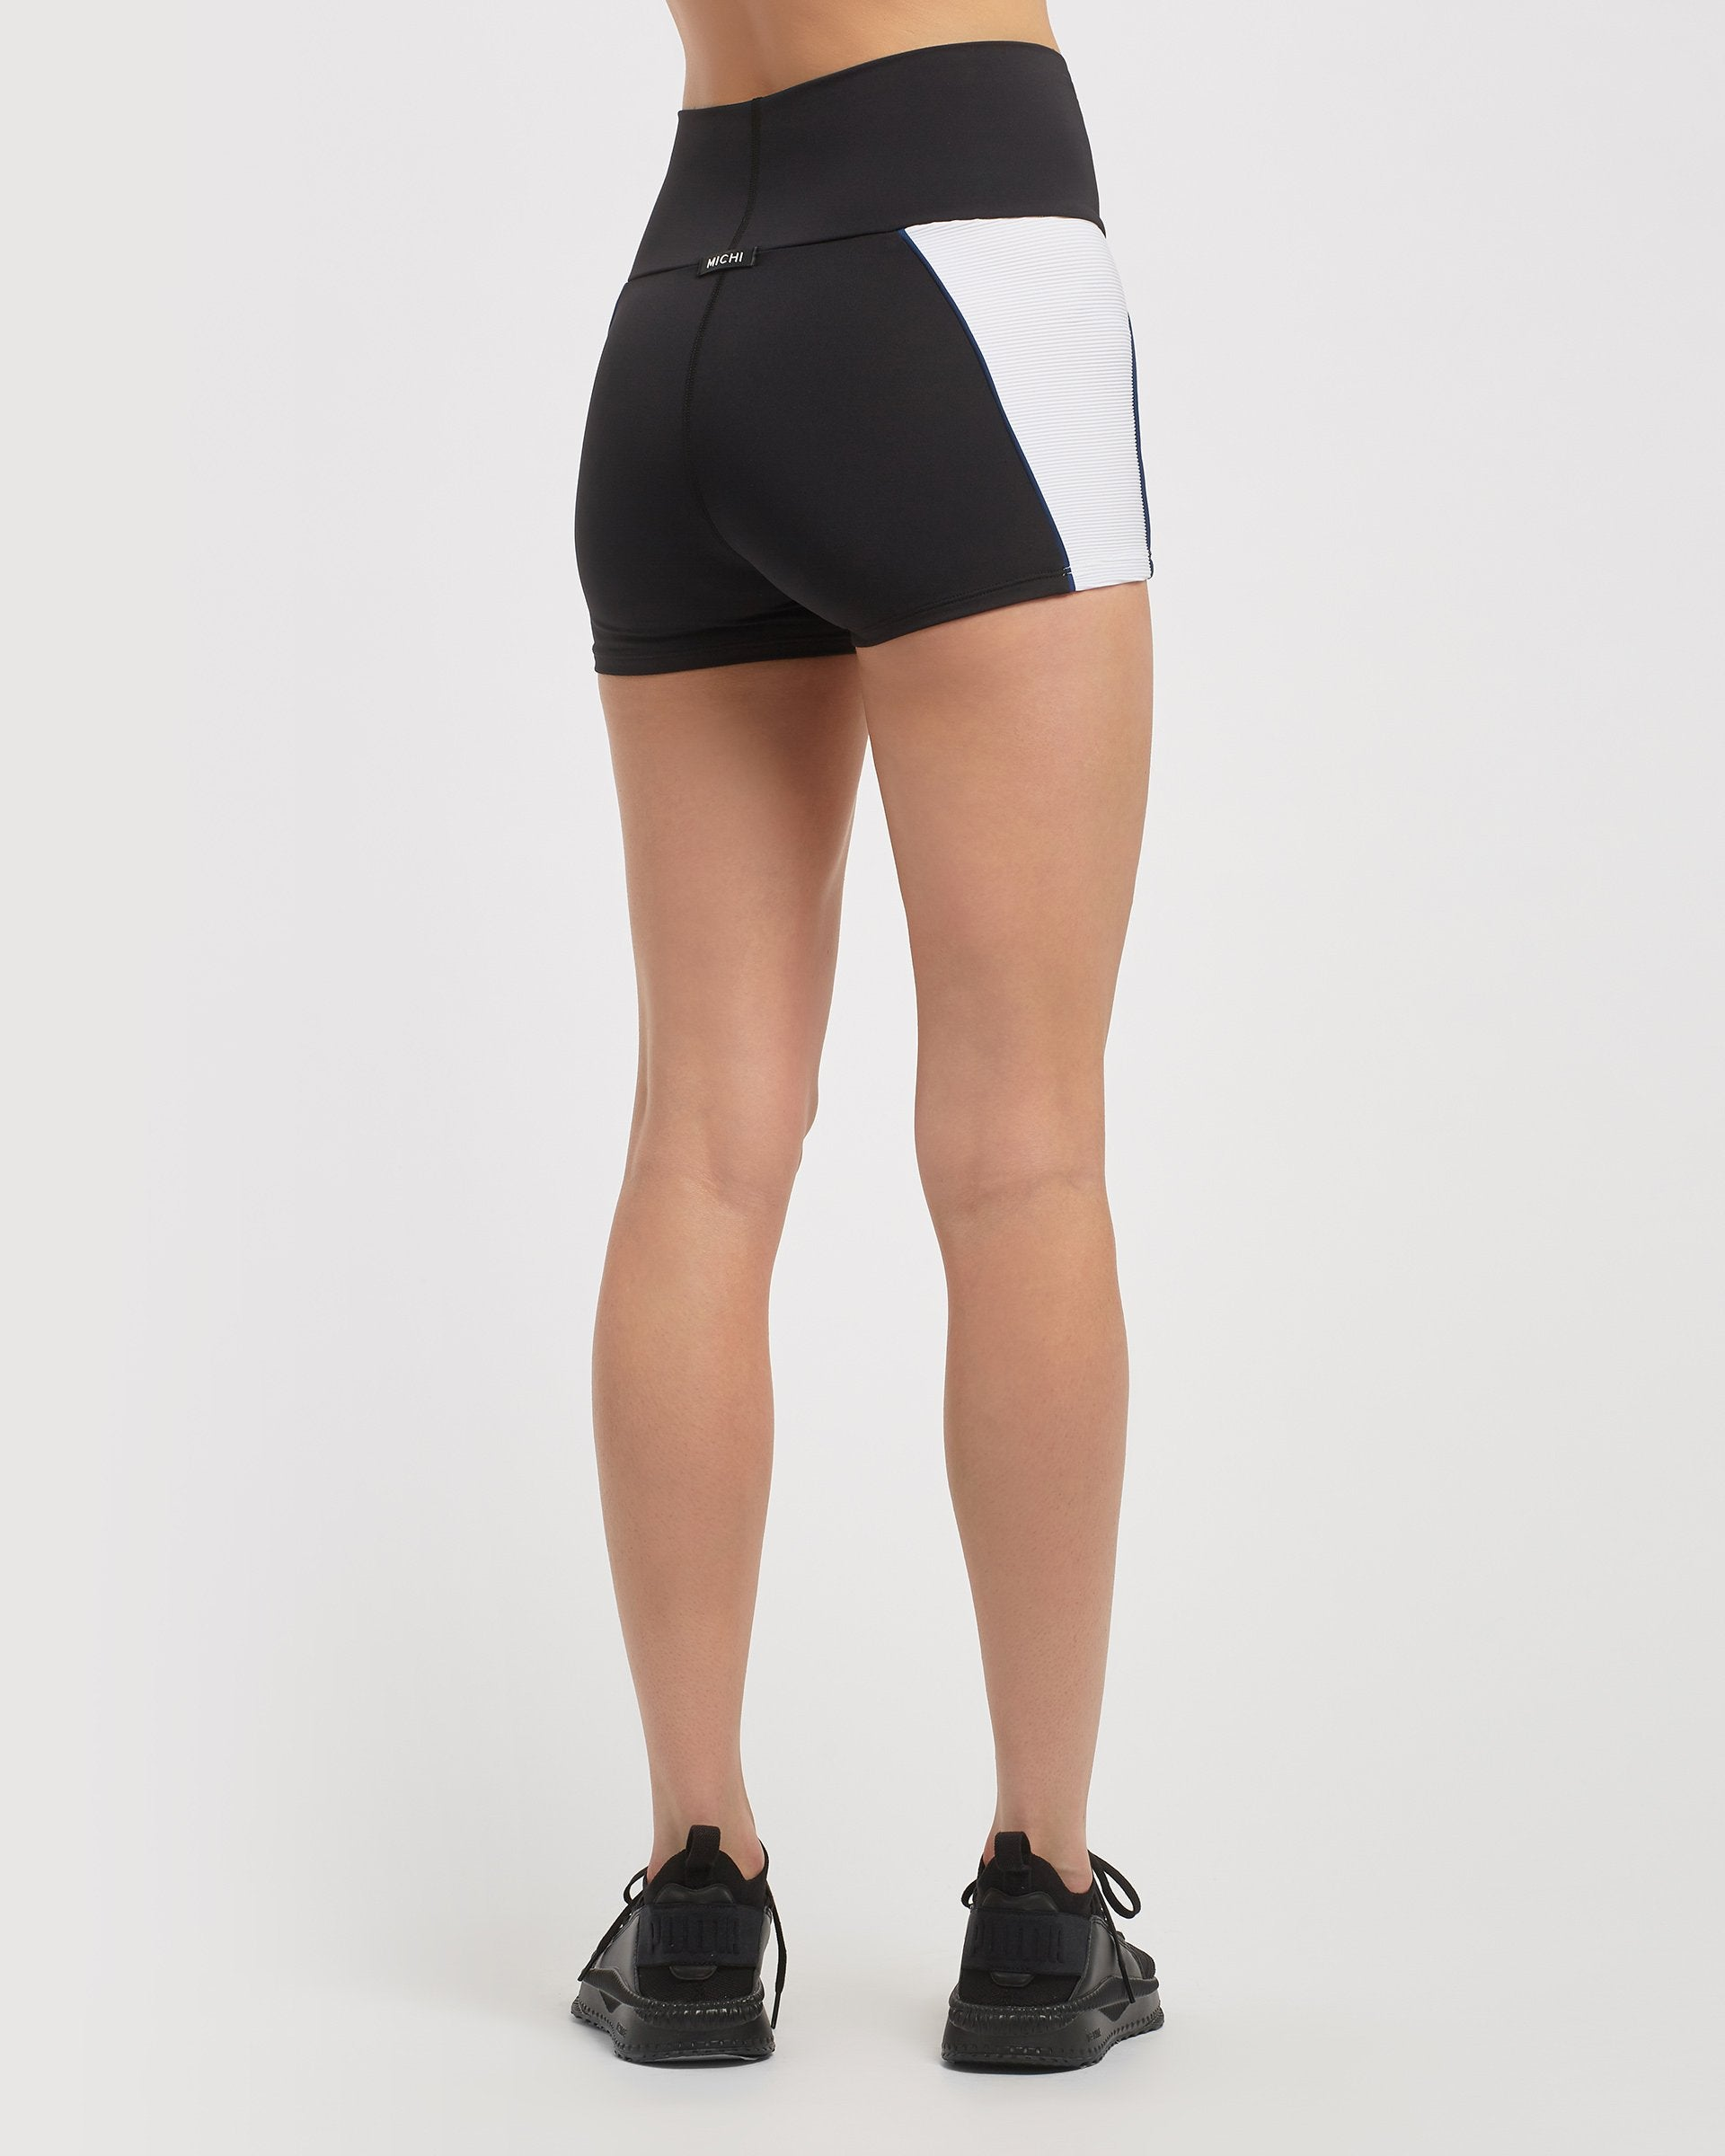 parallel-high-waisted-shorts-black-white-adriatic-blue